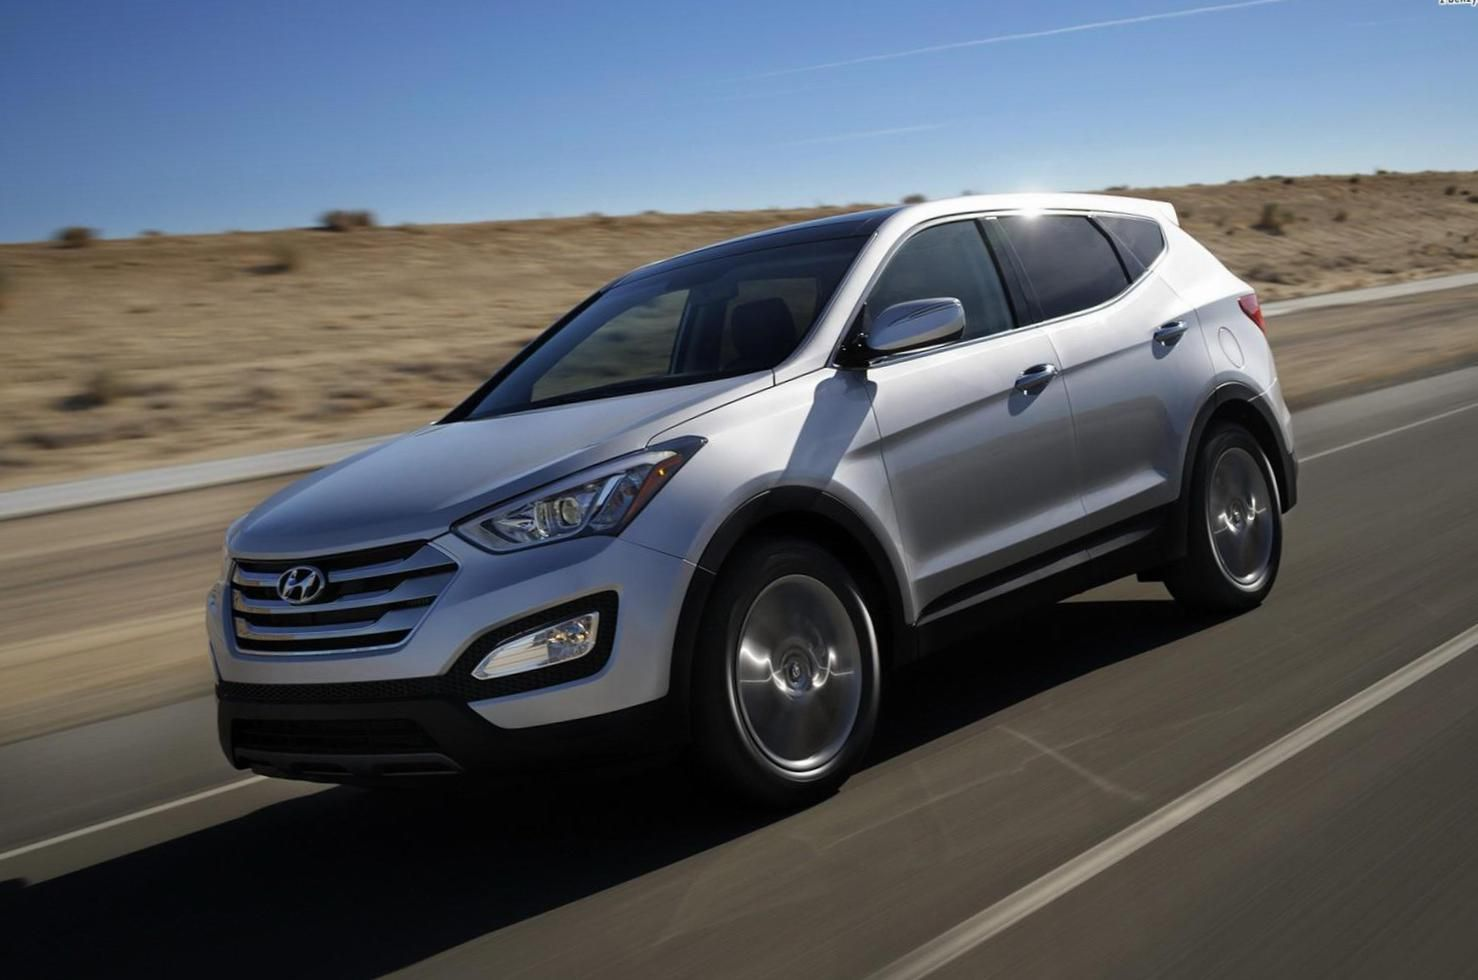 Hyundai Santa Fe review Shows